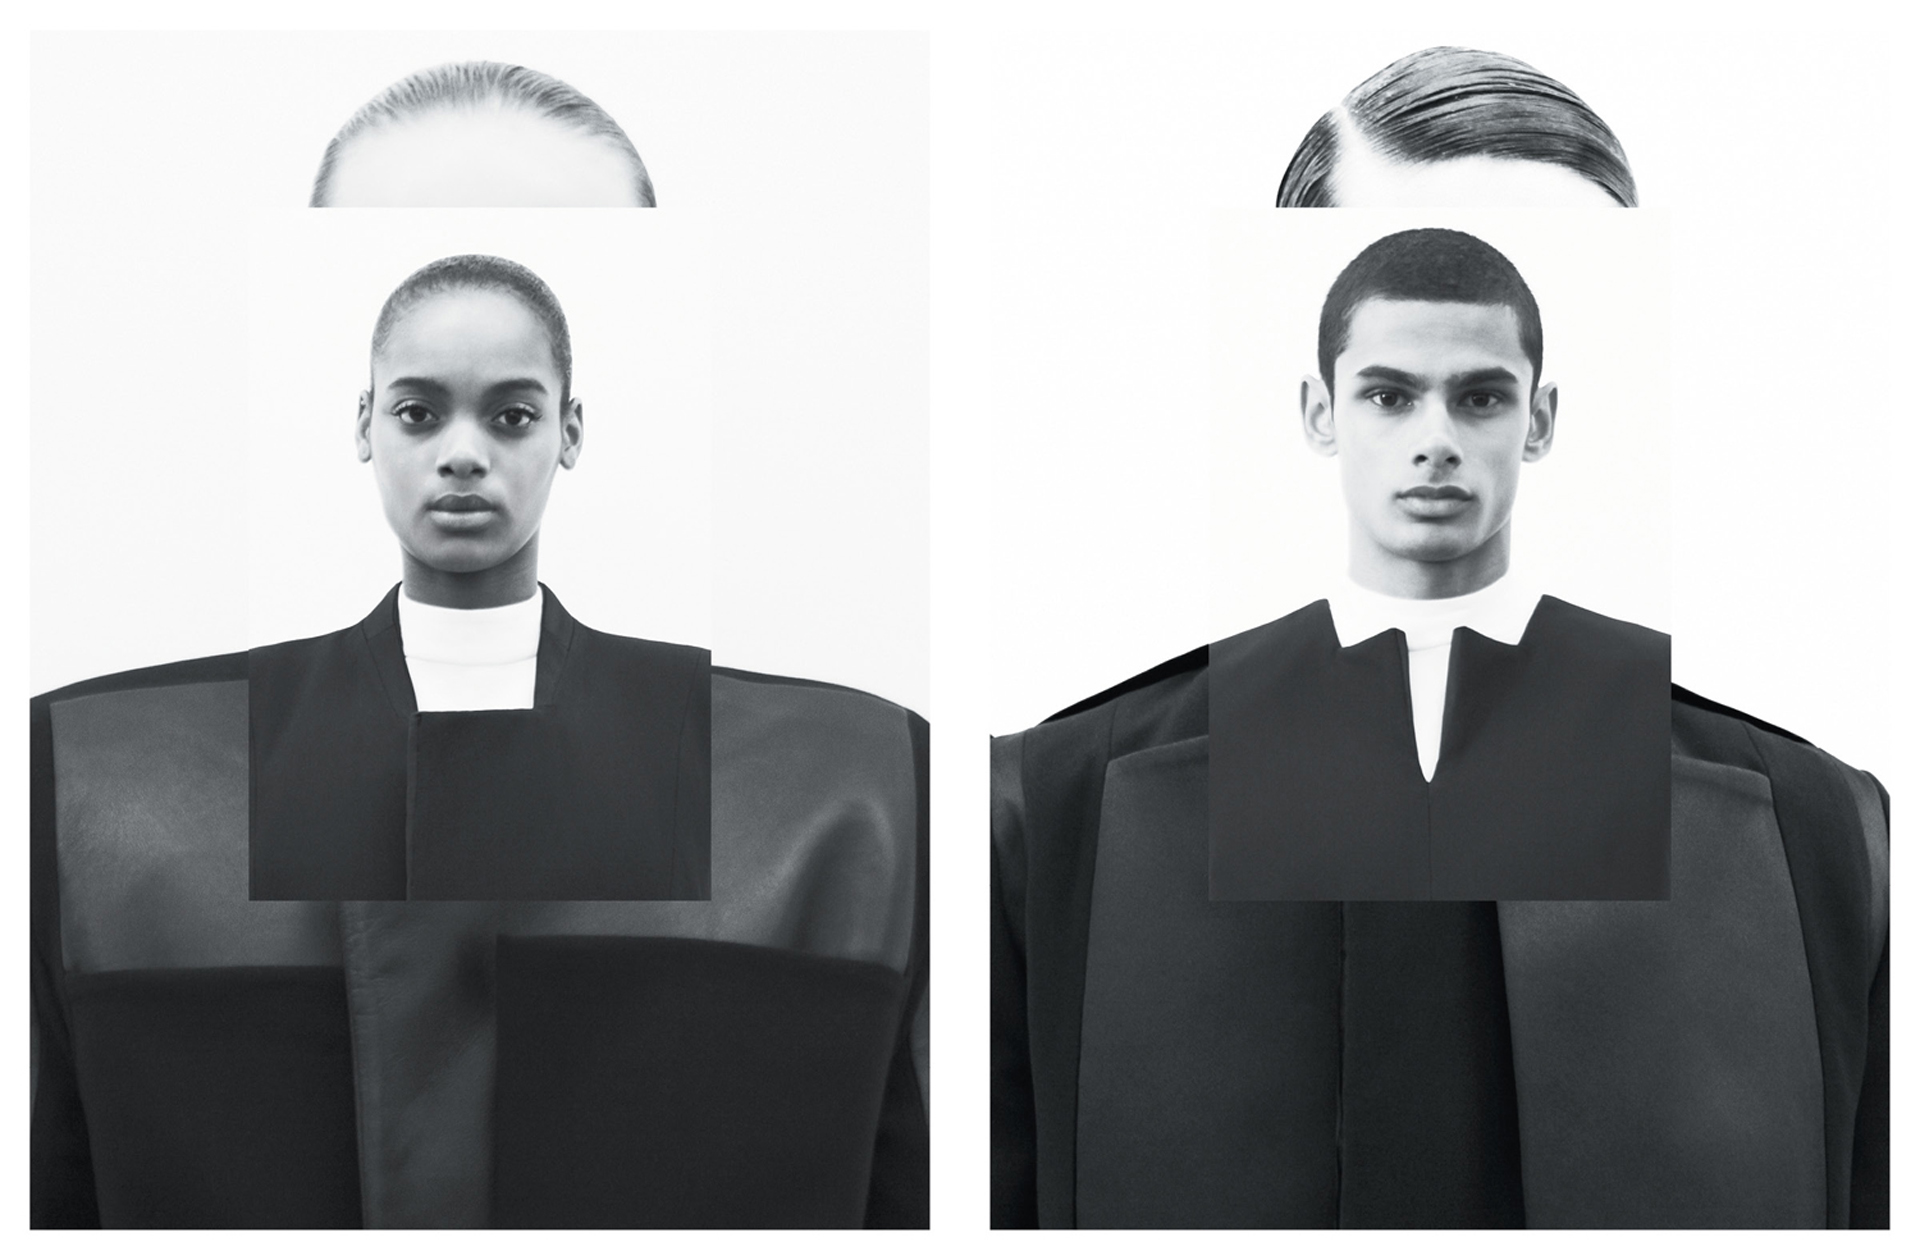 Rad Hourani Instagram Rad Hourani 2013